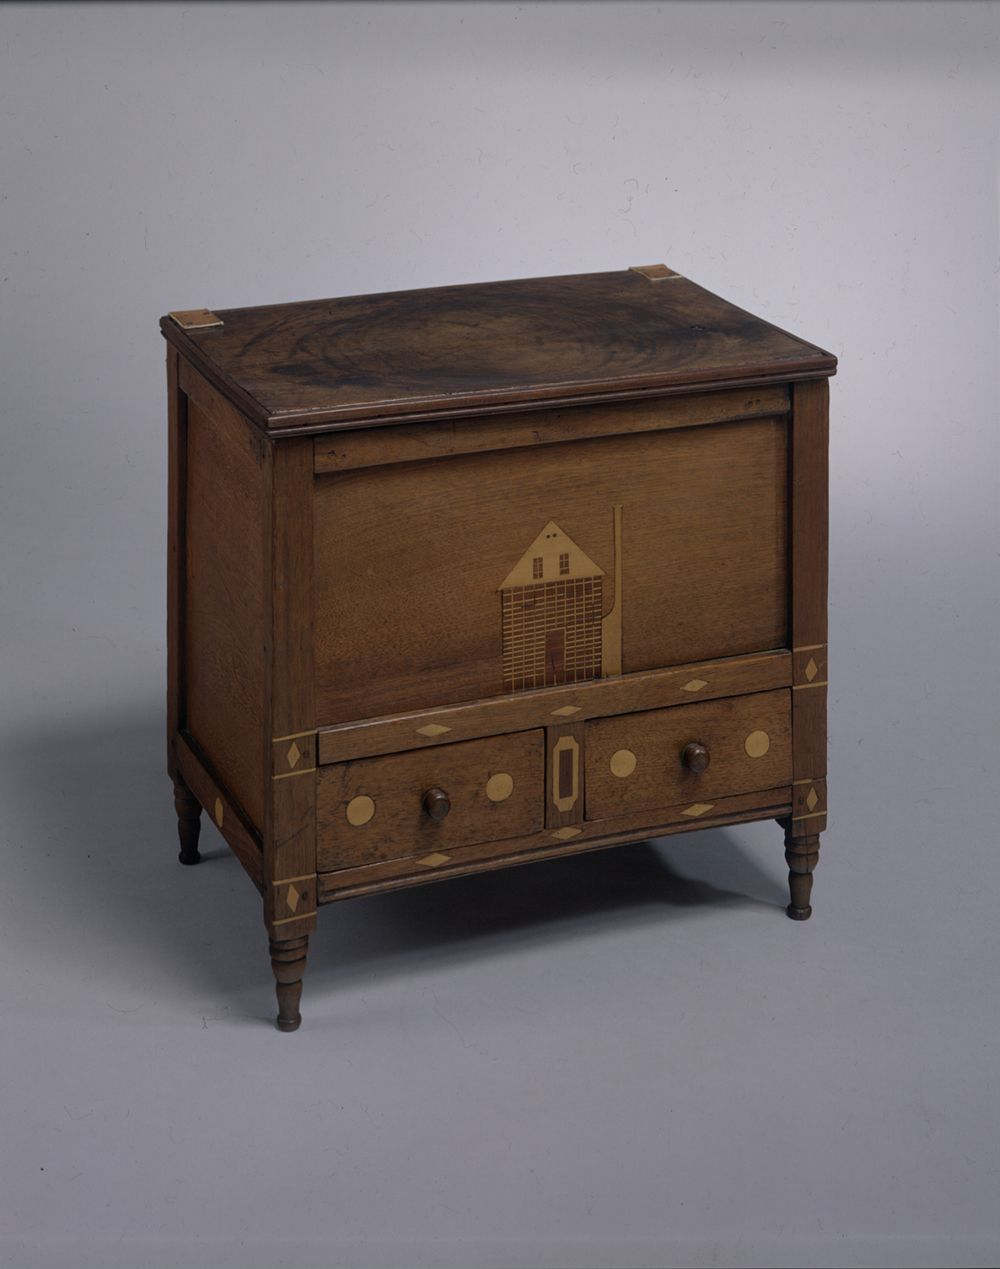 is poplar good for furniture. Eastern Tennessee, 1820-1830, Walnut, Poplar, HOA: 16 3/4; WOA: 7/8; DOA: 11 1/4 MESDA # 2500. This Small Chest Is Difficult To Attribute Any Given Poplar Good For Furniture